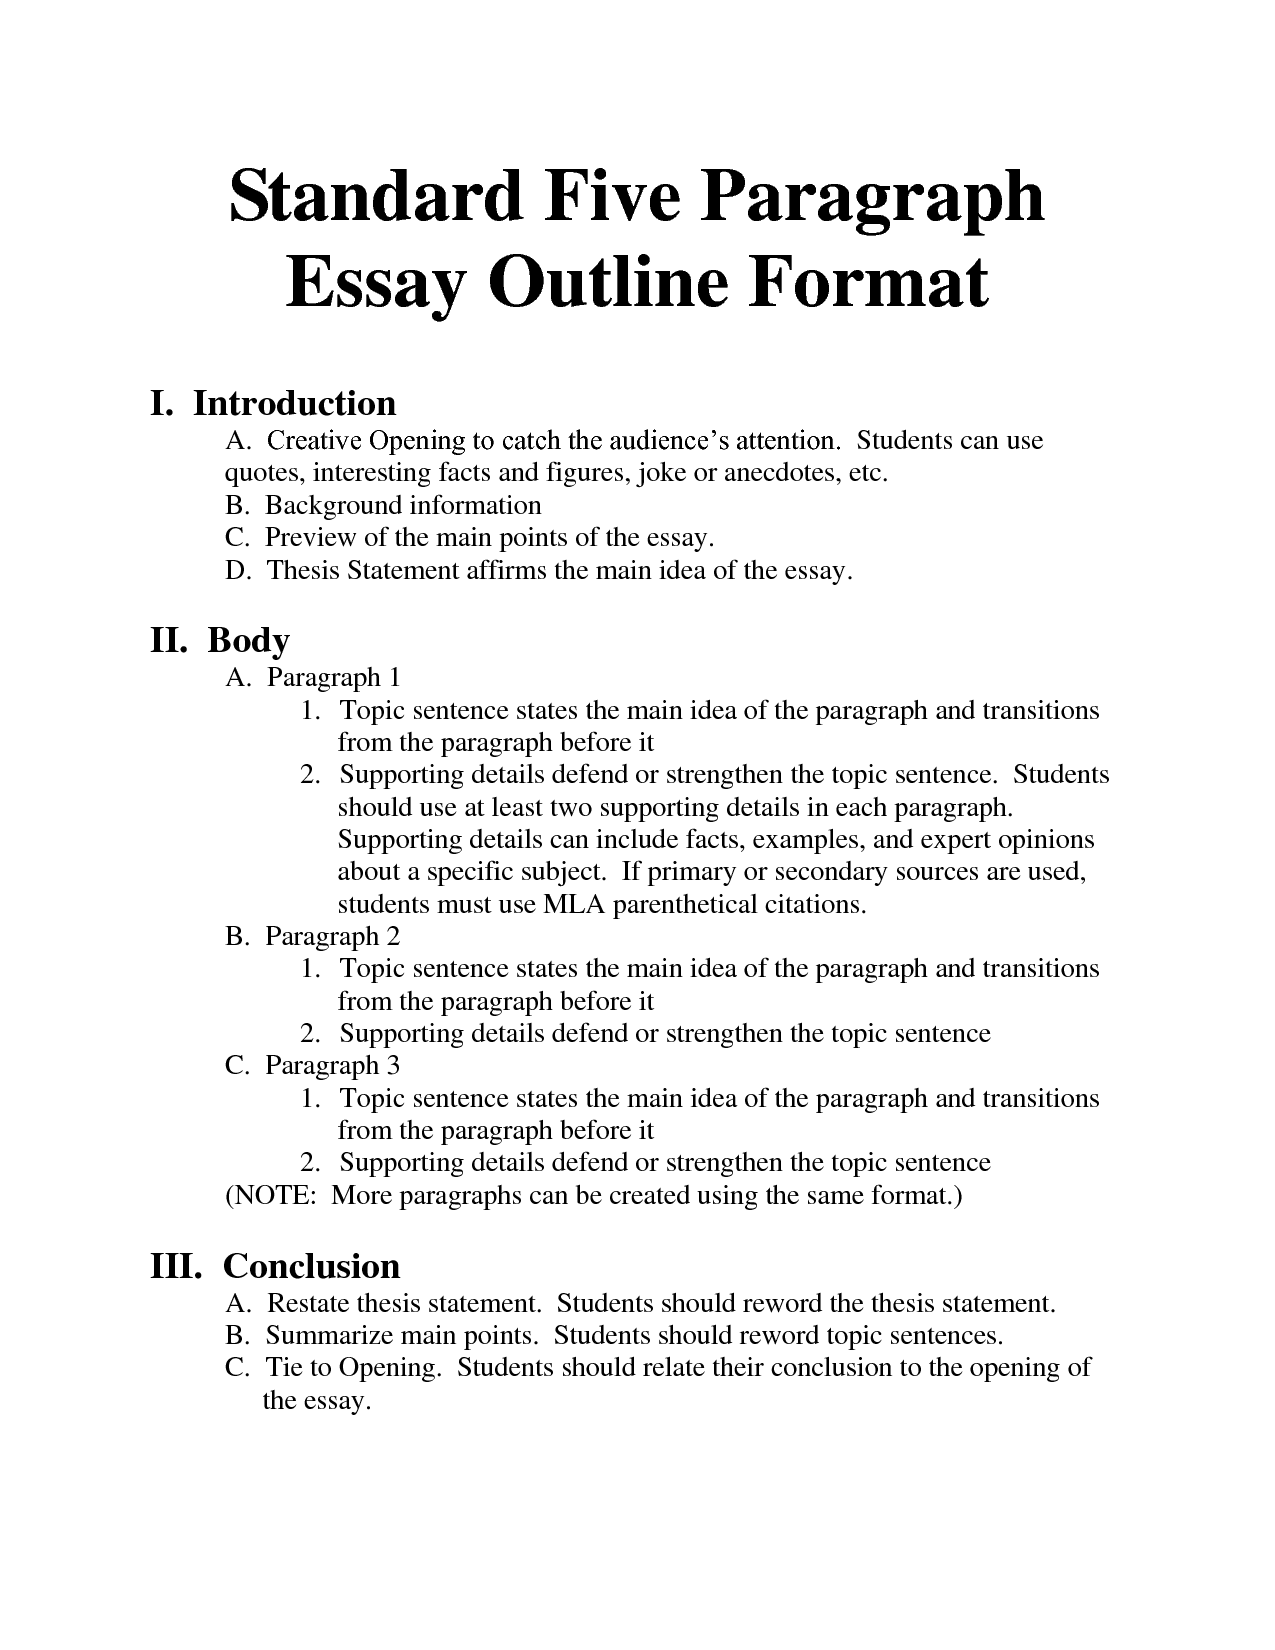 Buy argumentative essay introduction paragraph outline